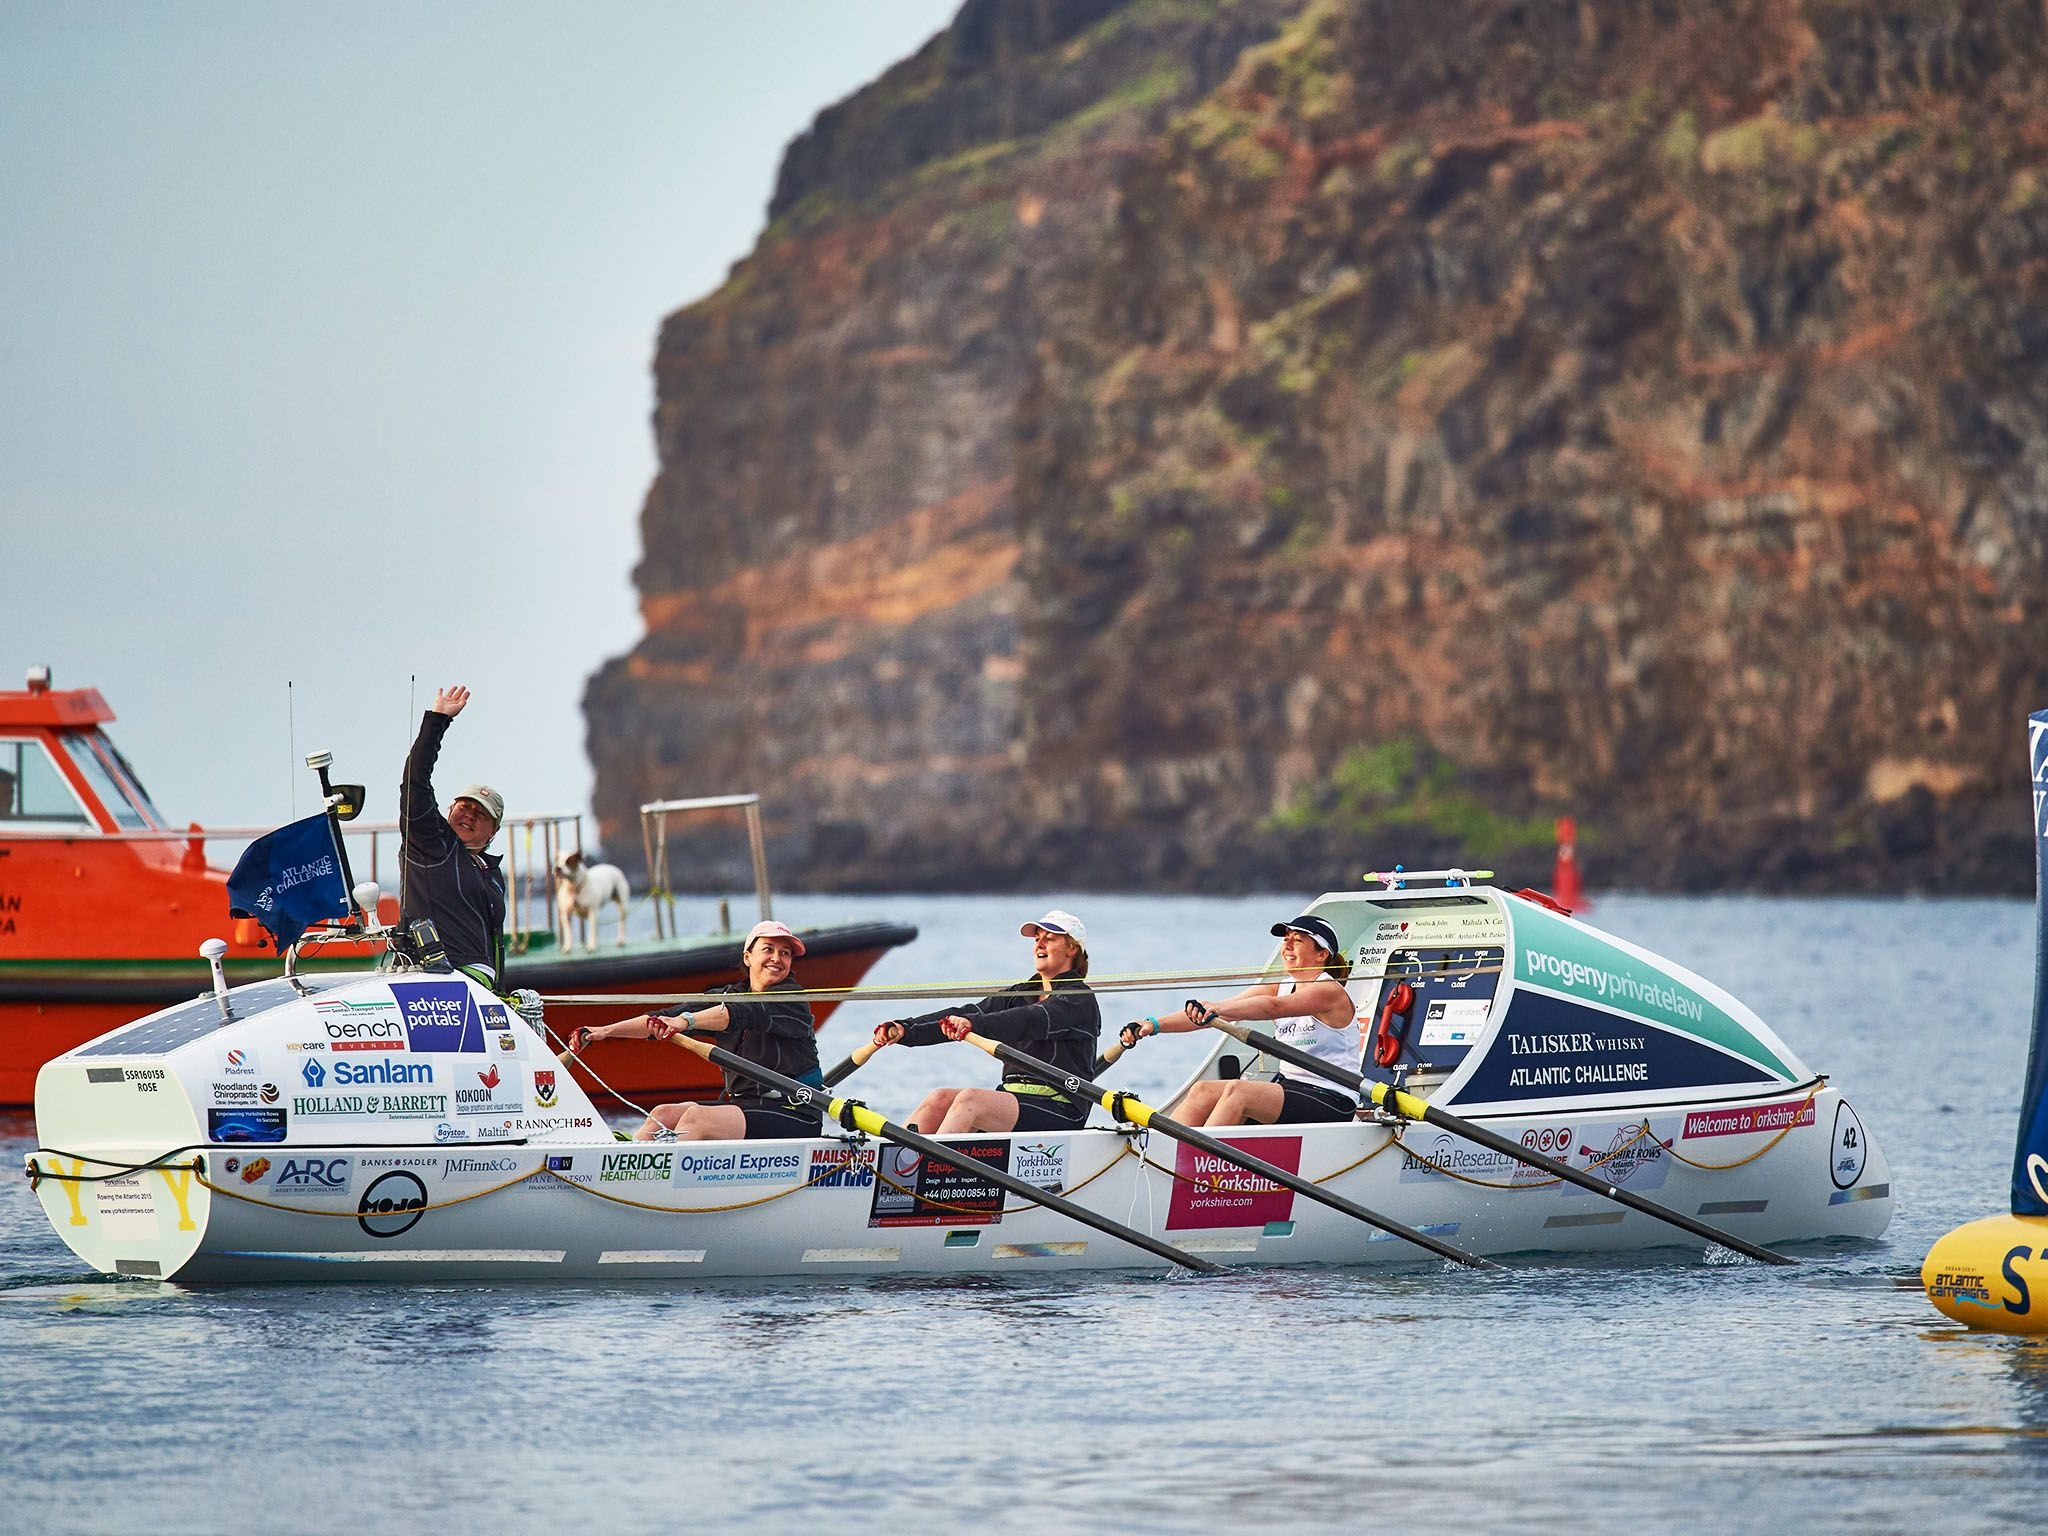 La Gomera: Four Mums from Yorkshire depart la Gomera as they attempt to break a world record for... [Photo of the day - ژوئن 2016]